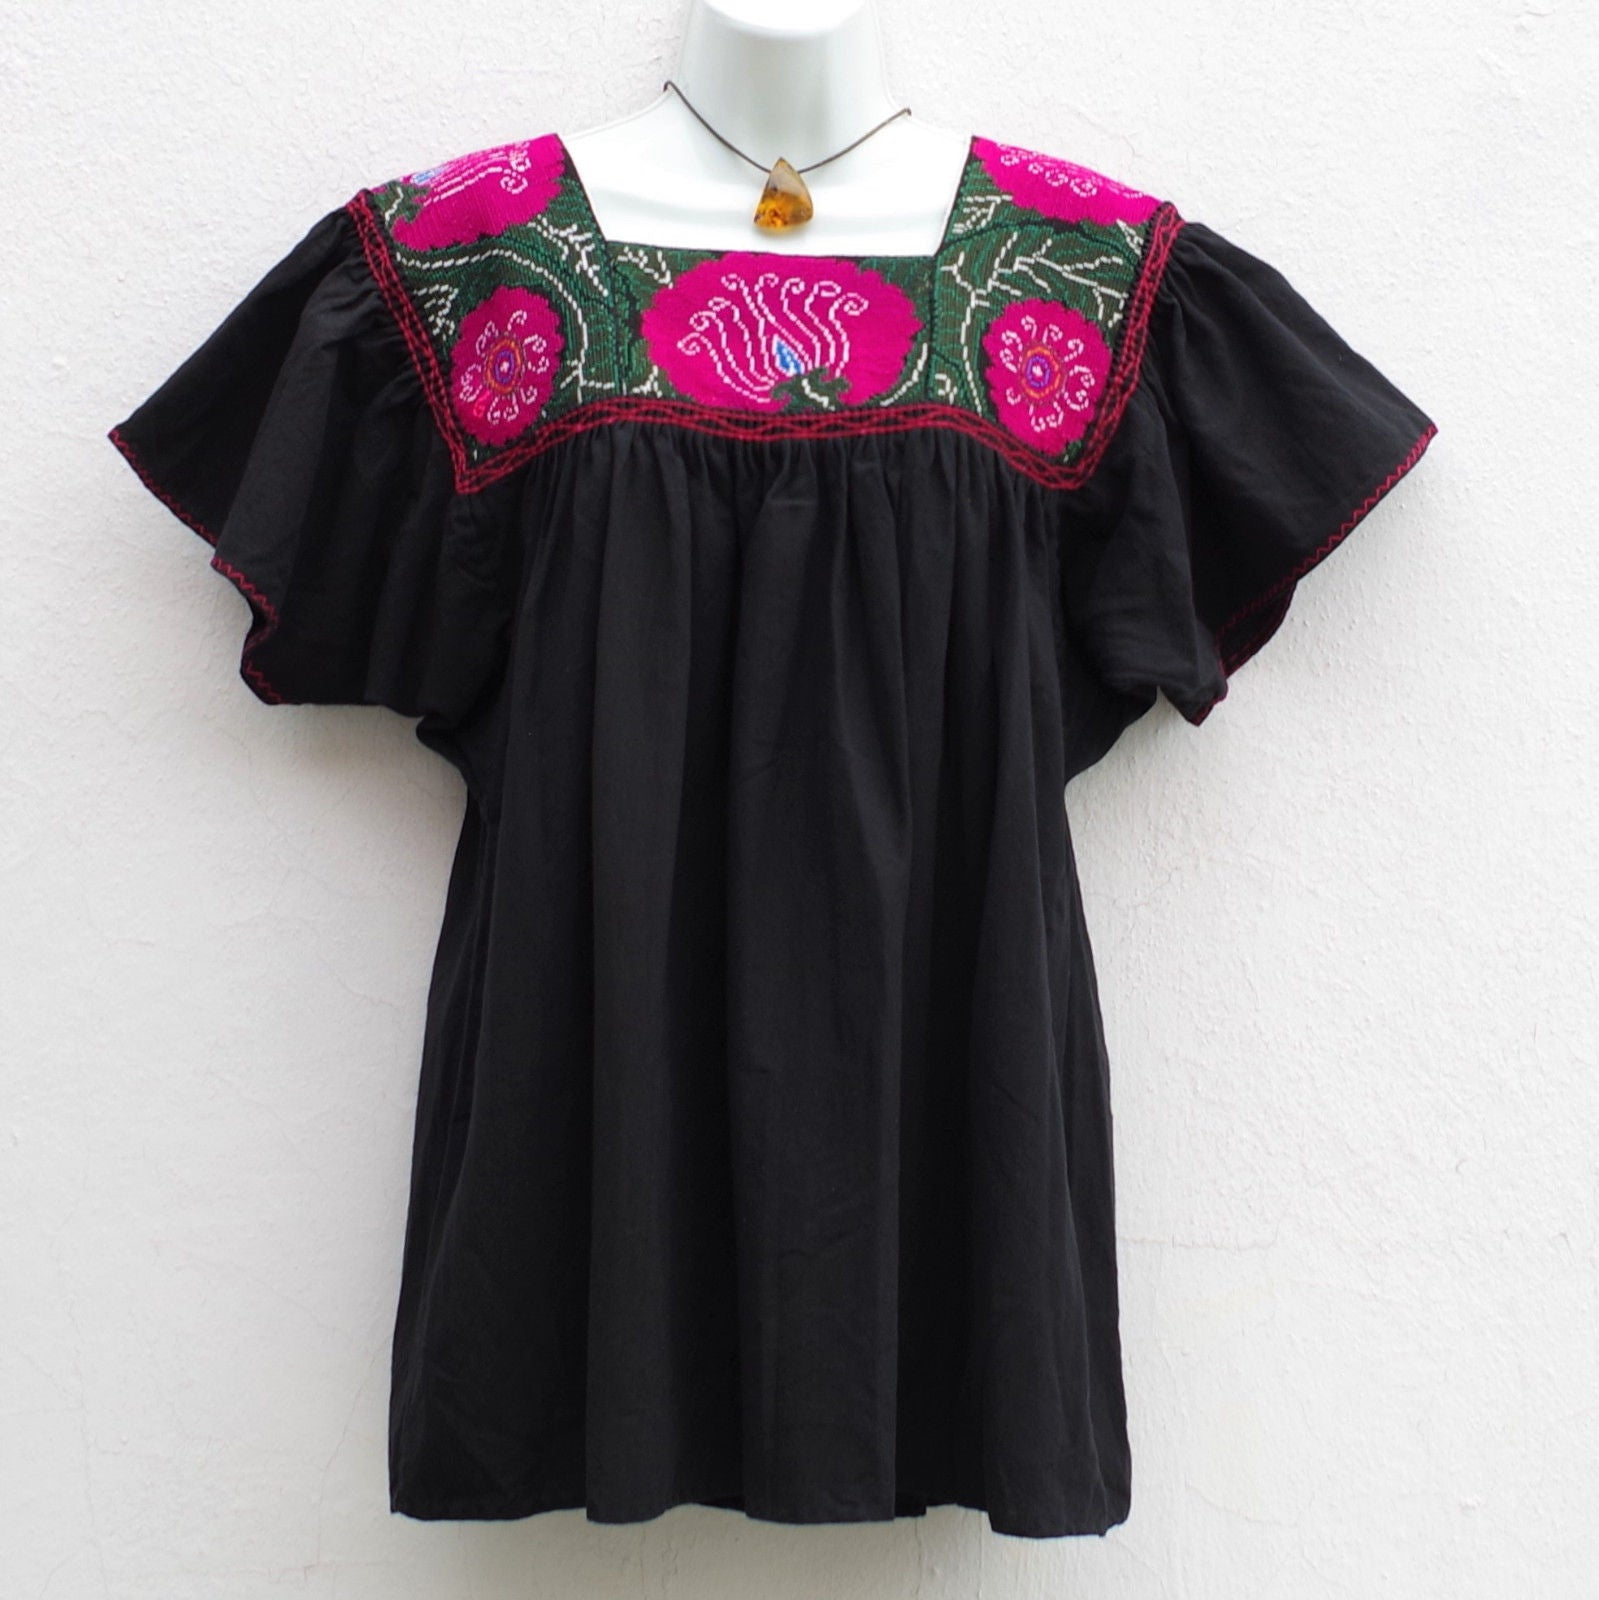 ... Black Mexican Peasant Blouse Huipil Vintage Flowers Embroidered Chiapas  M, L ... - Black Mexican Peasant Blouse Huipil Vintage Flowers Embroidered